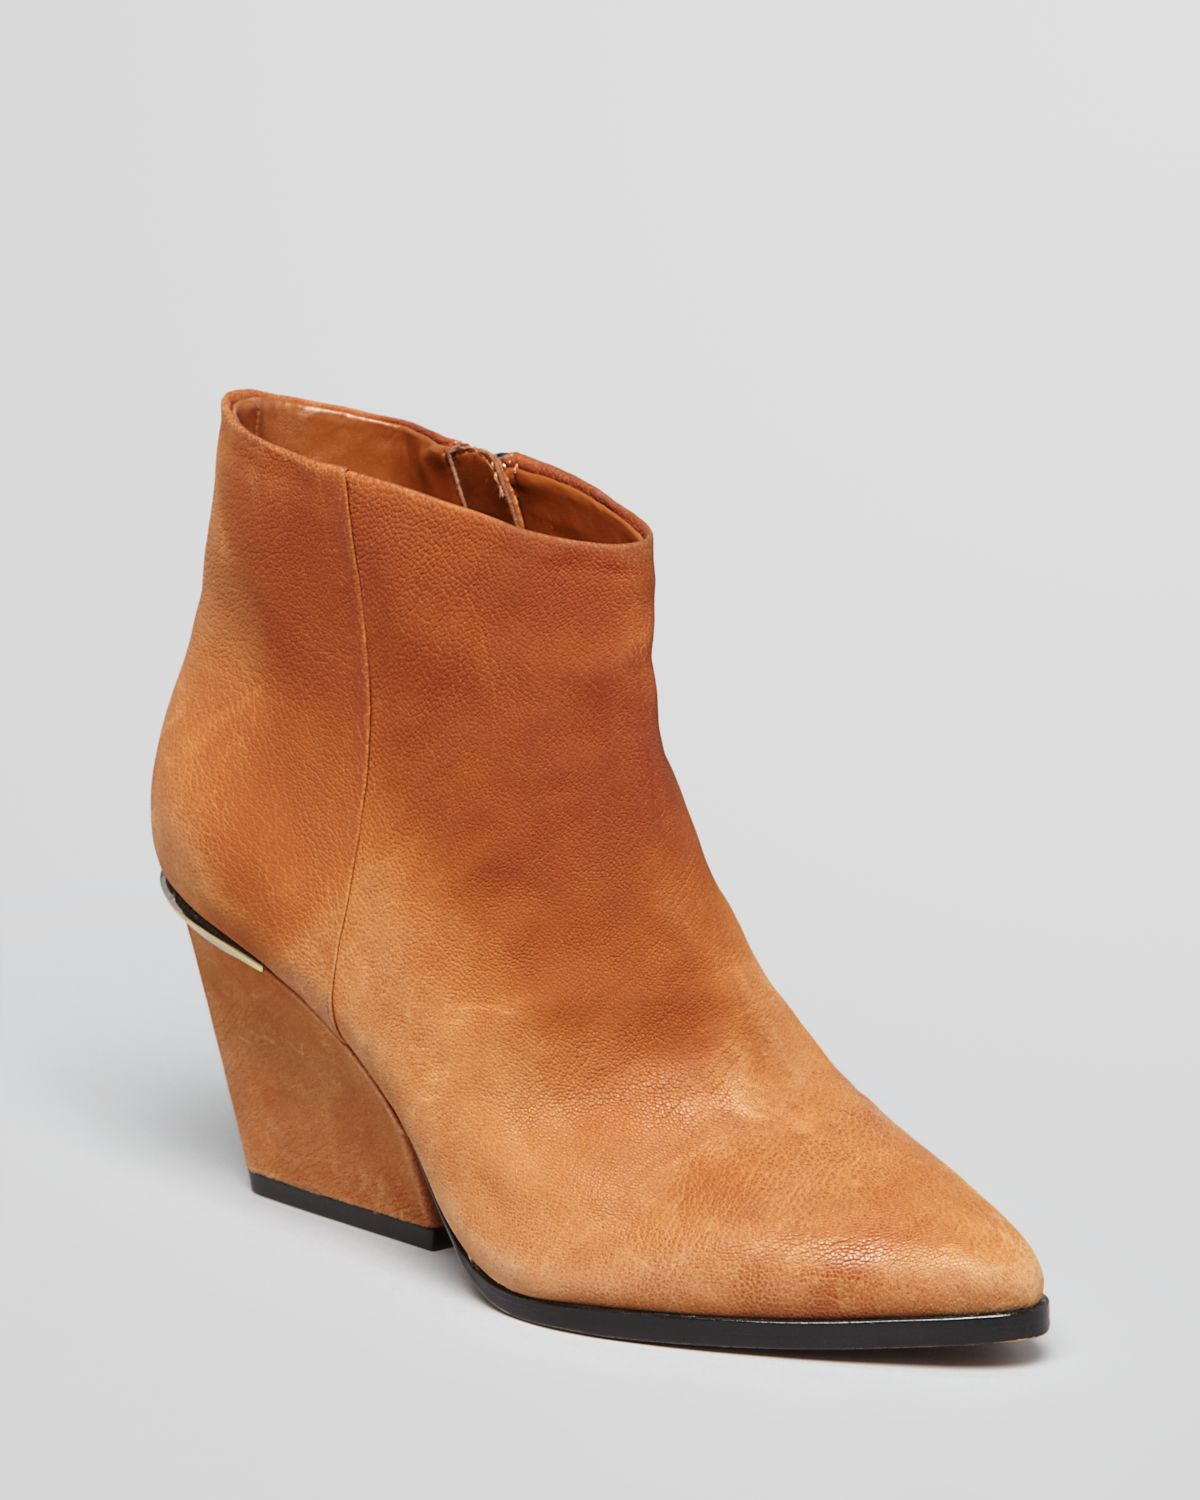 Boutique 9 Pointed Toe Wedge Booties Soke Low Heel in Brown | Lyst